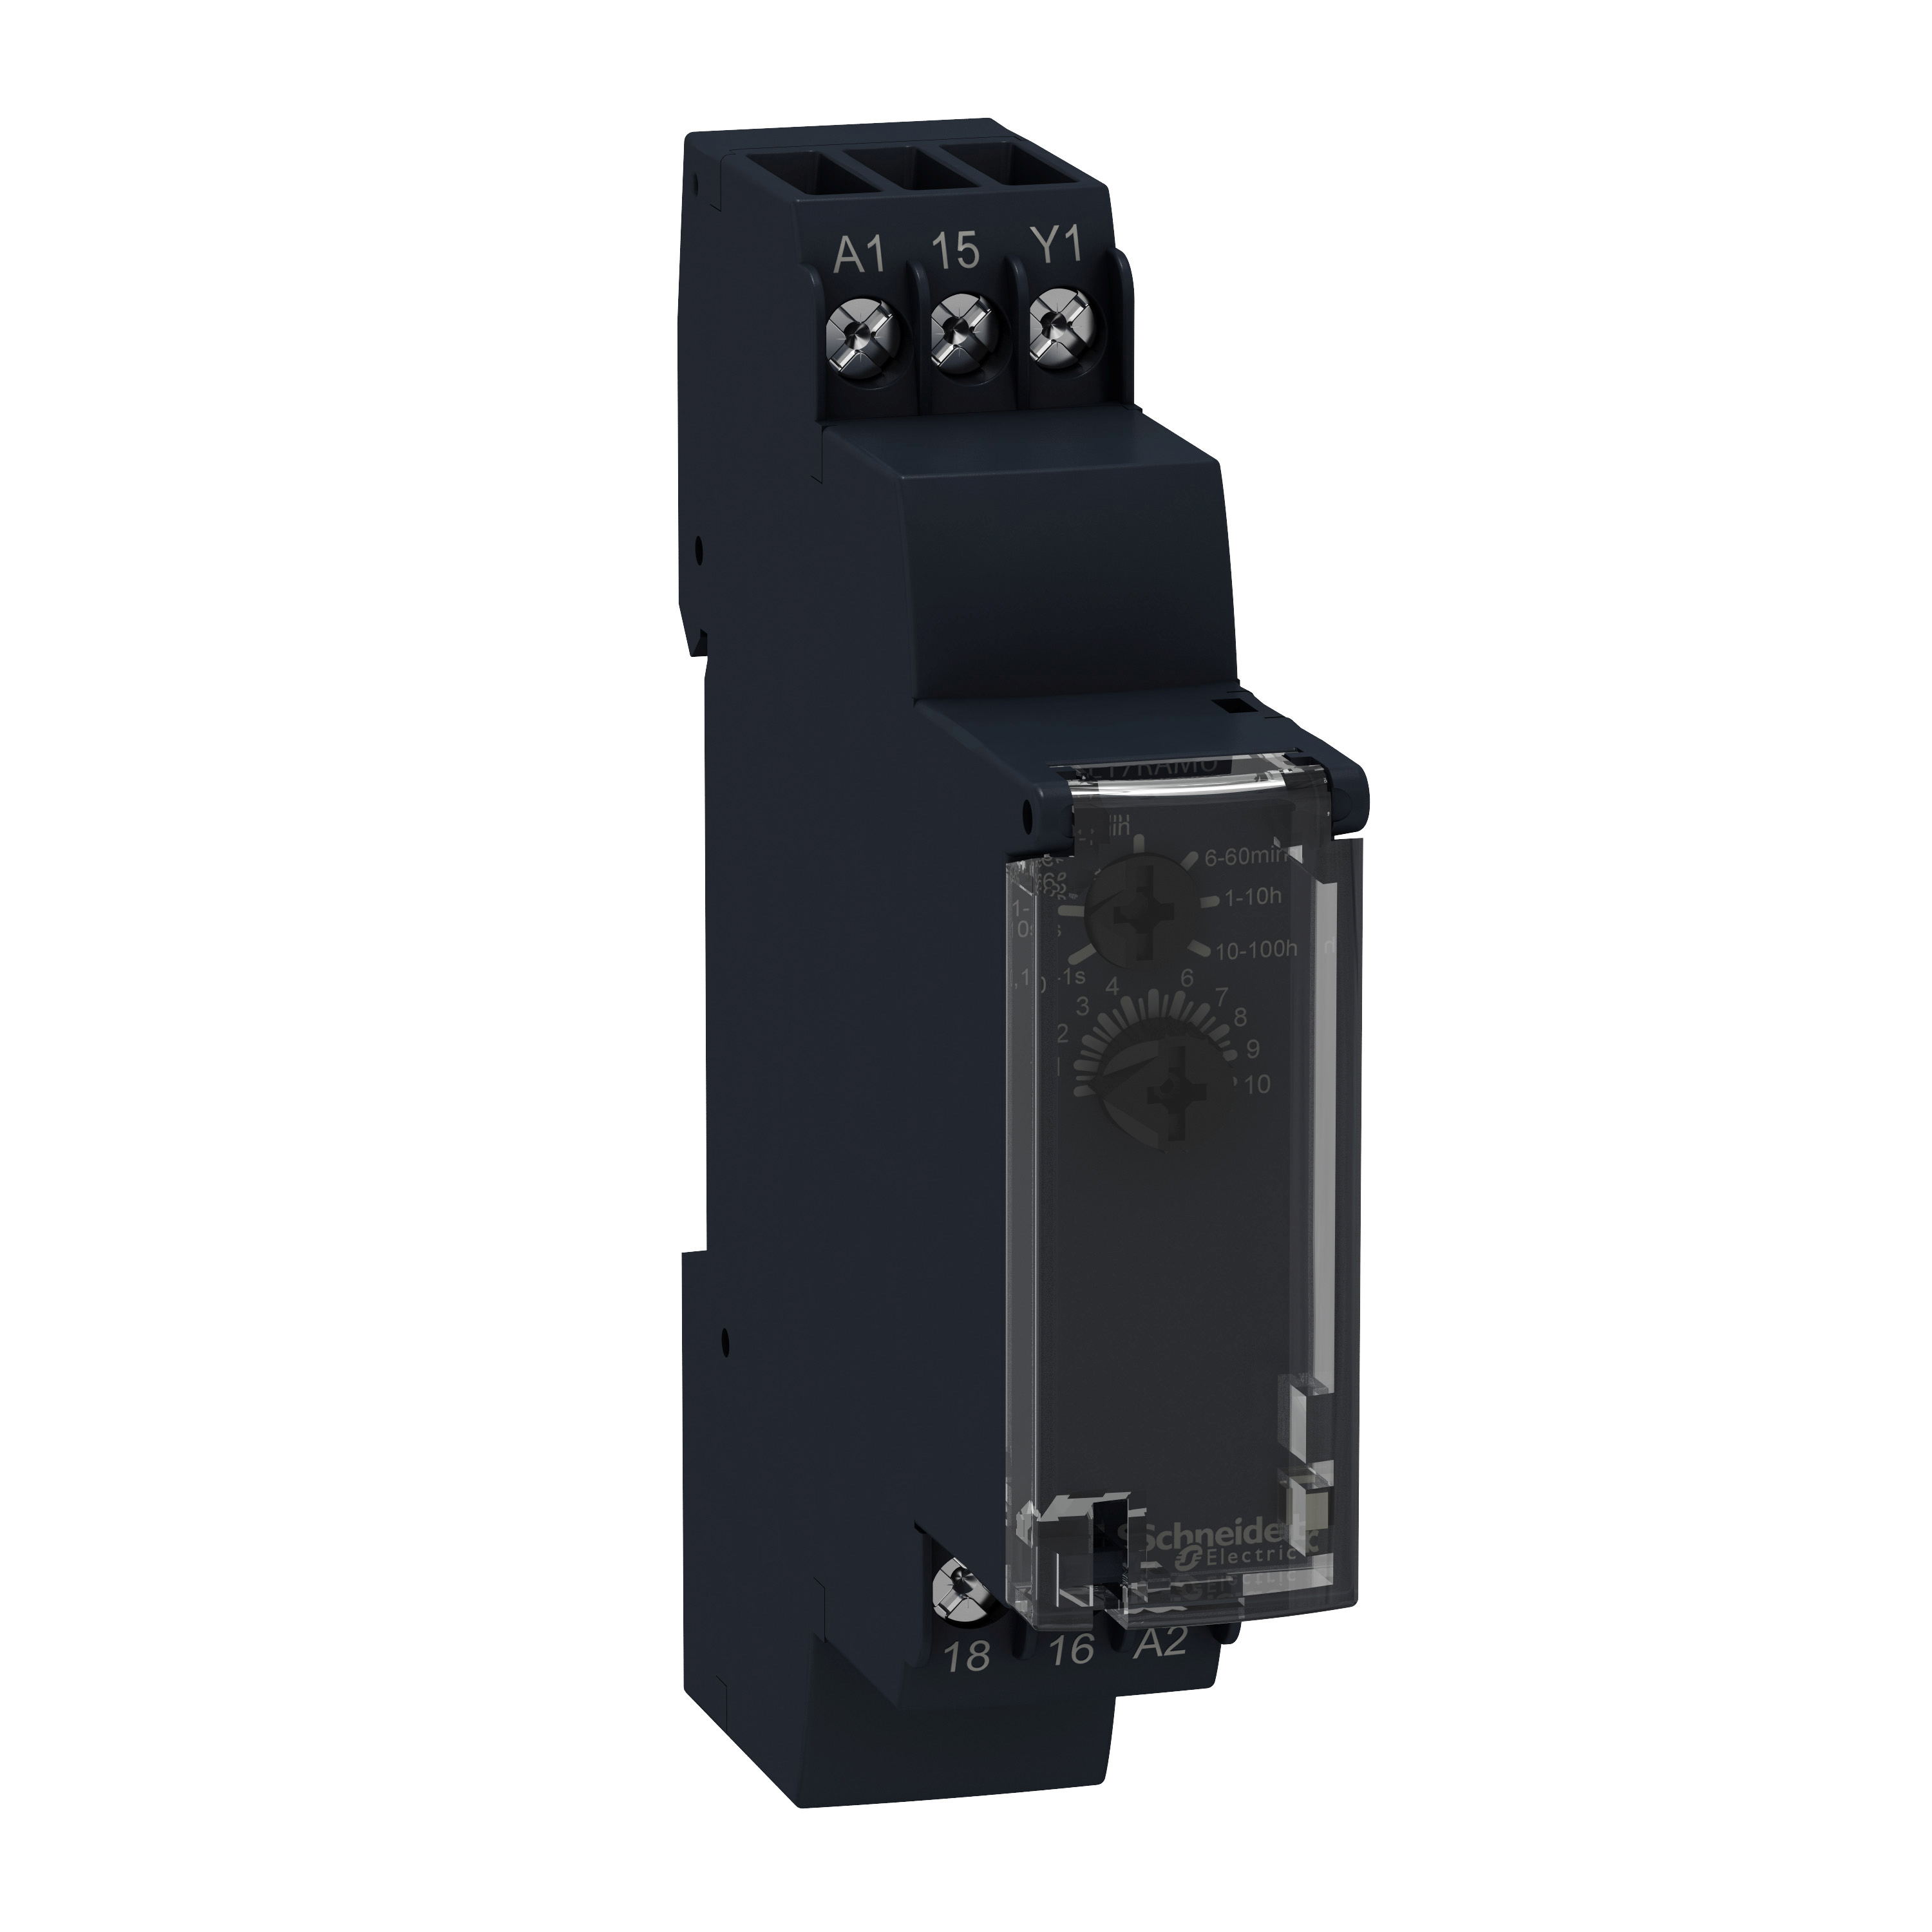 SCHNEIDER ELECTRIC Modular timing relay, 0.7 A, 1 CO, 1 s..100 h, on delay, solid state output, 24..240 V AC/DC